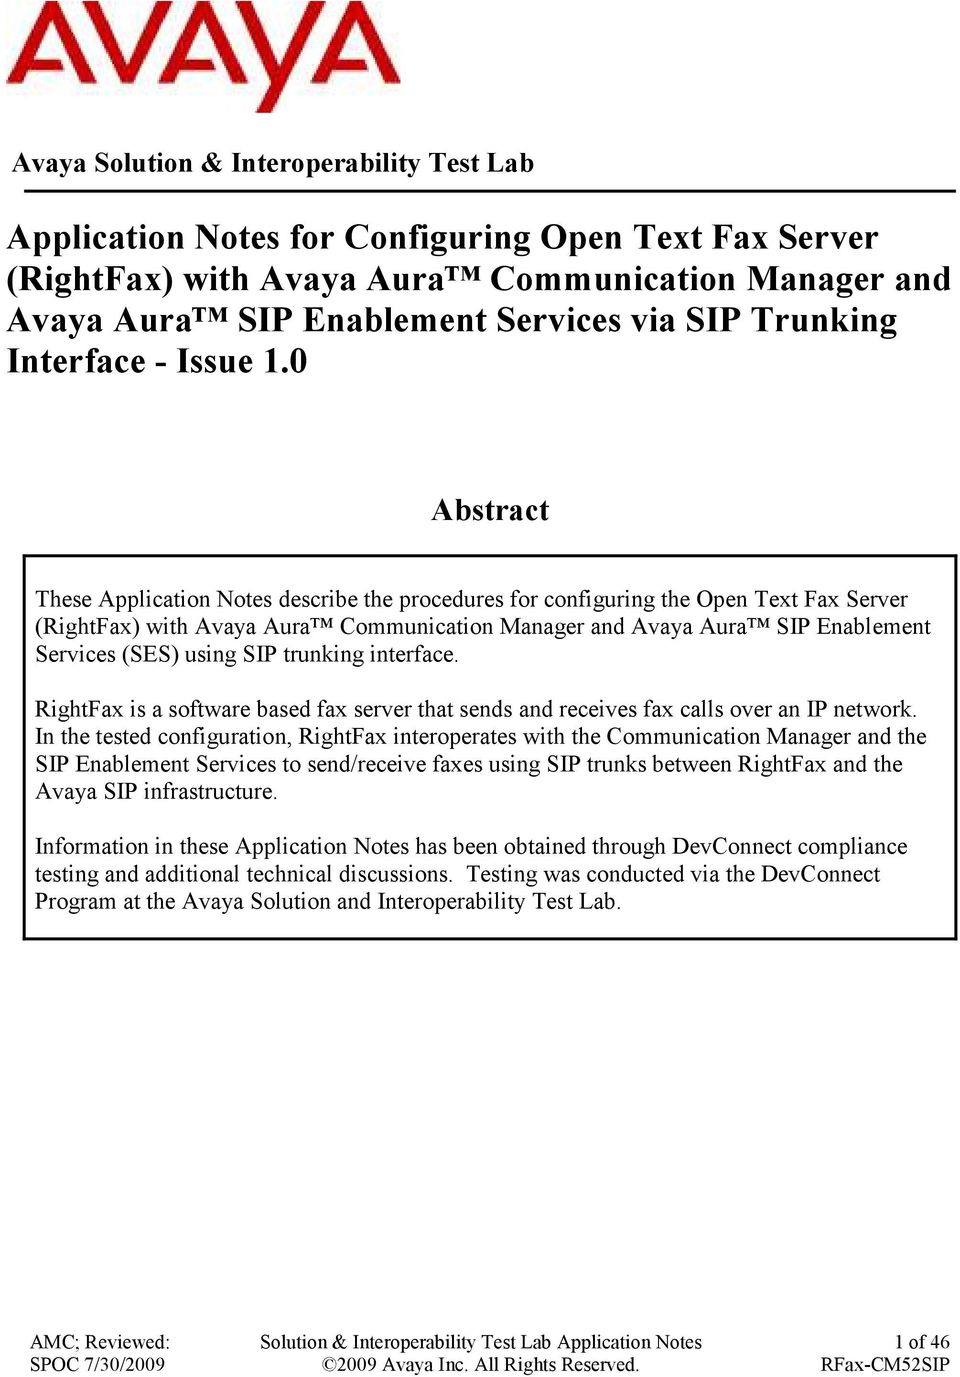 0 Abstract These Application Notes describe the procedures for configuring the Open Text Fax Server (RightFax) with Avaya Aura Communication Manager and Avaya Aura SIP Enablement Services (SES) using